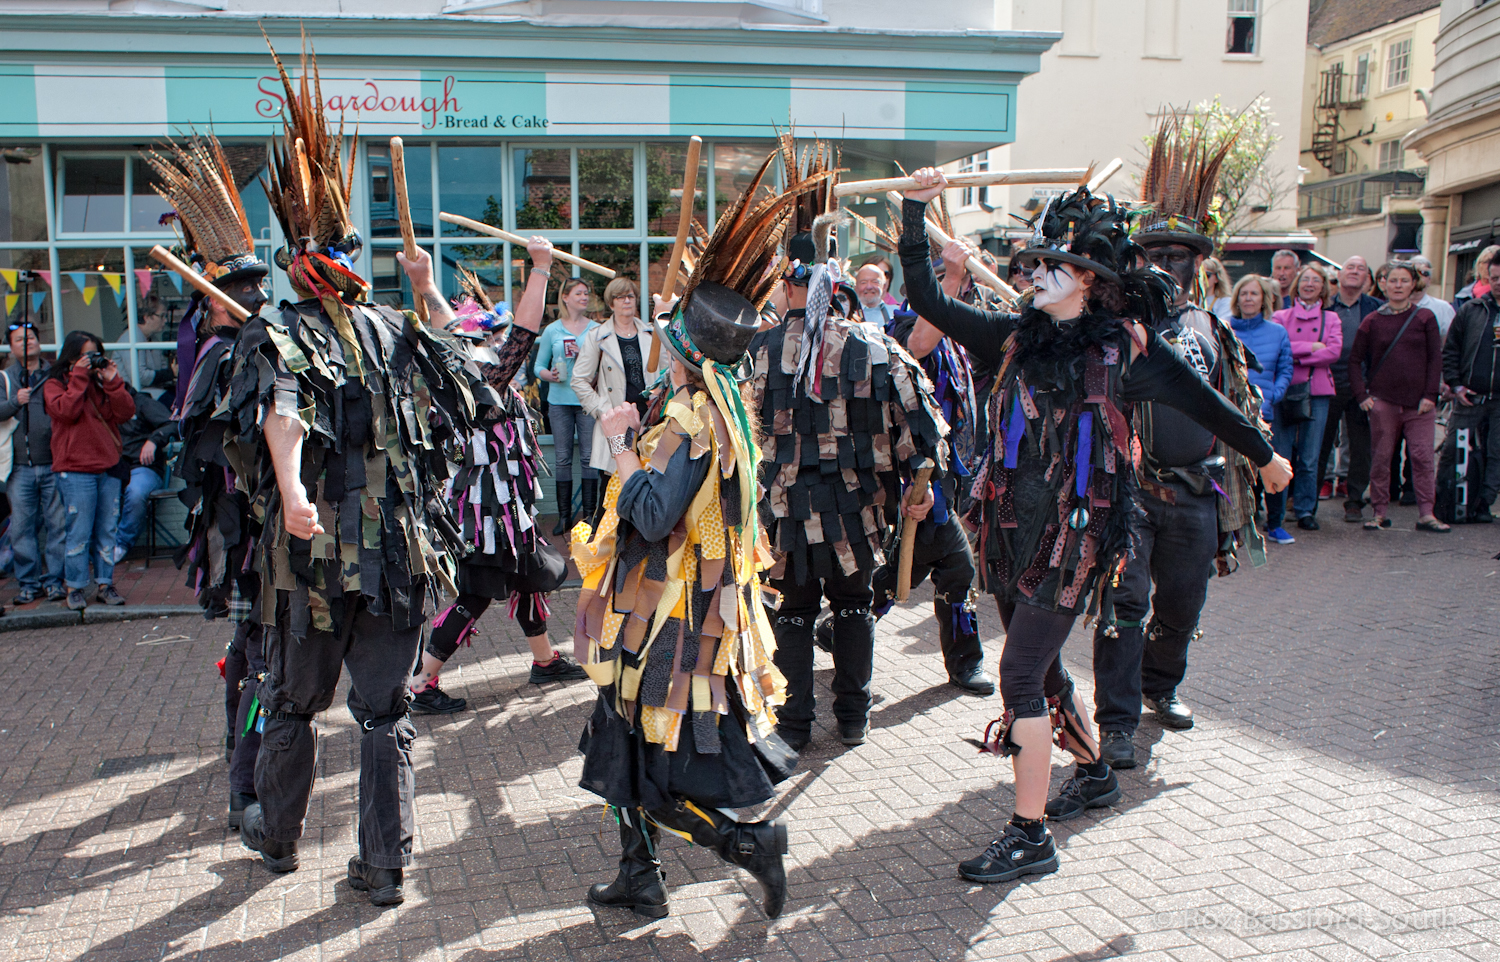 Armaleggan border morris dancers with tatters and sticks